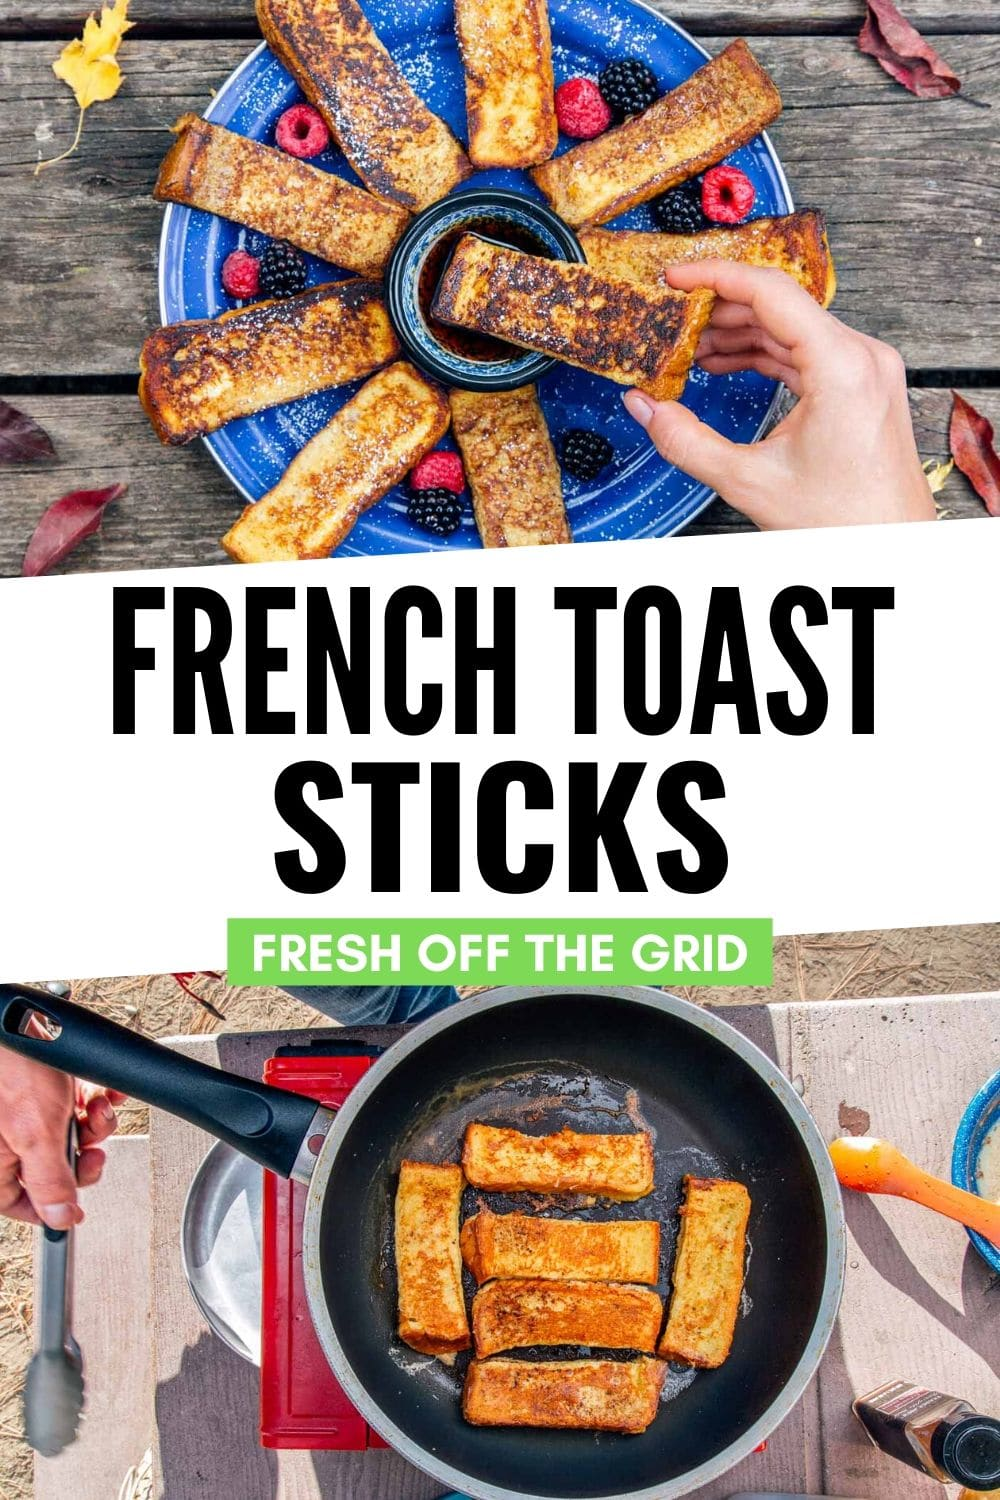 French Toast Sticks are a perfect camping breakfast that's fun for kids AND adults. Serve with maple syrup for dunking and a side of fresh berries. via @freshoffthegrid